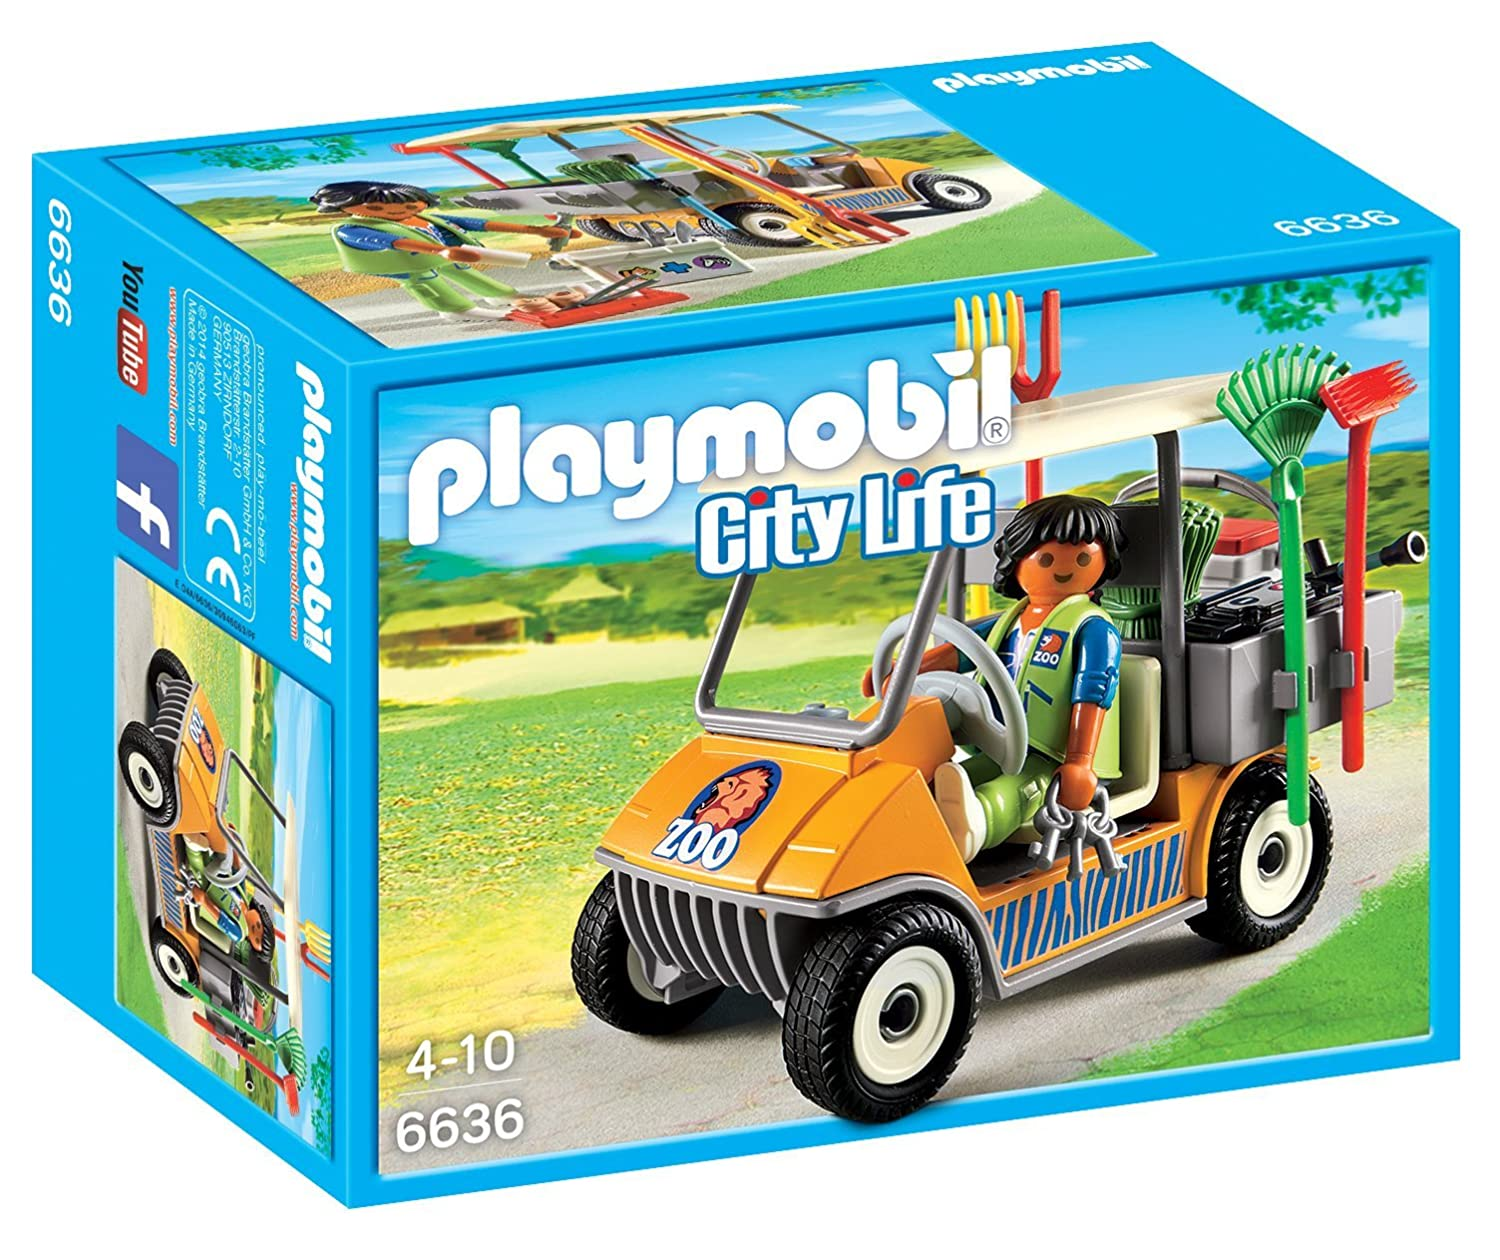 Playmobil 6636 City Life Zookeeper's Cart